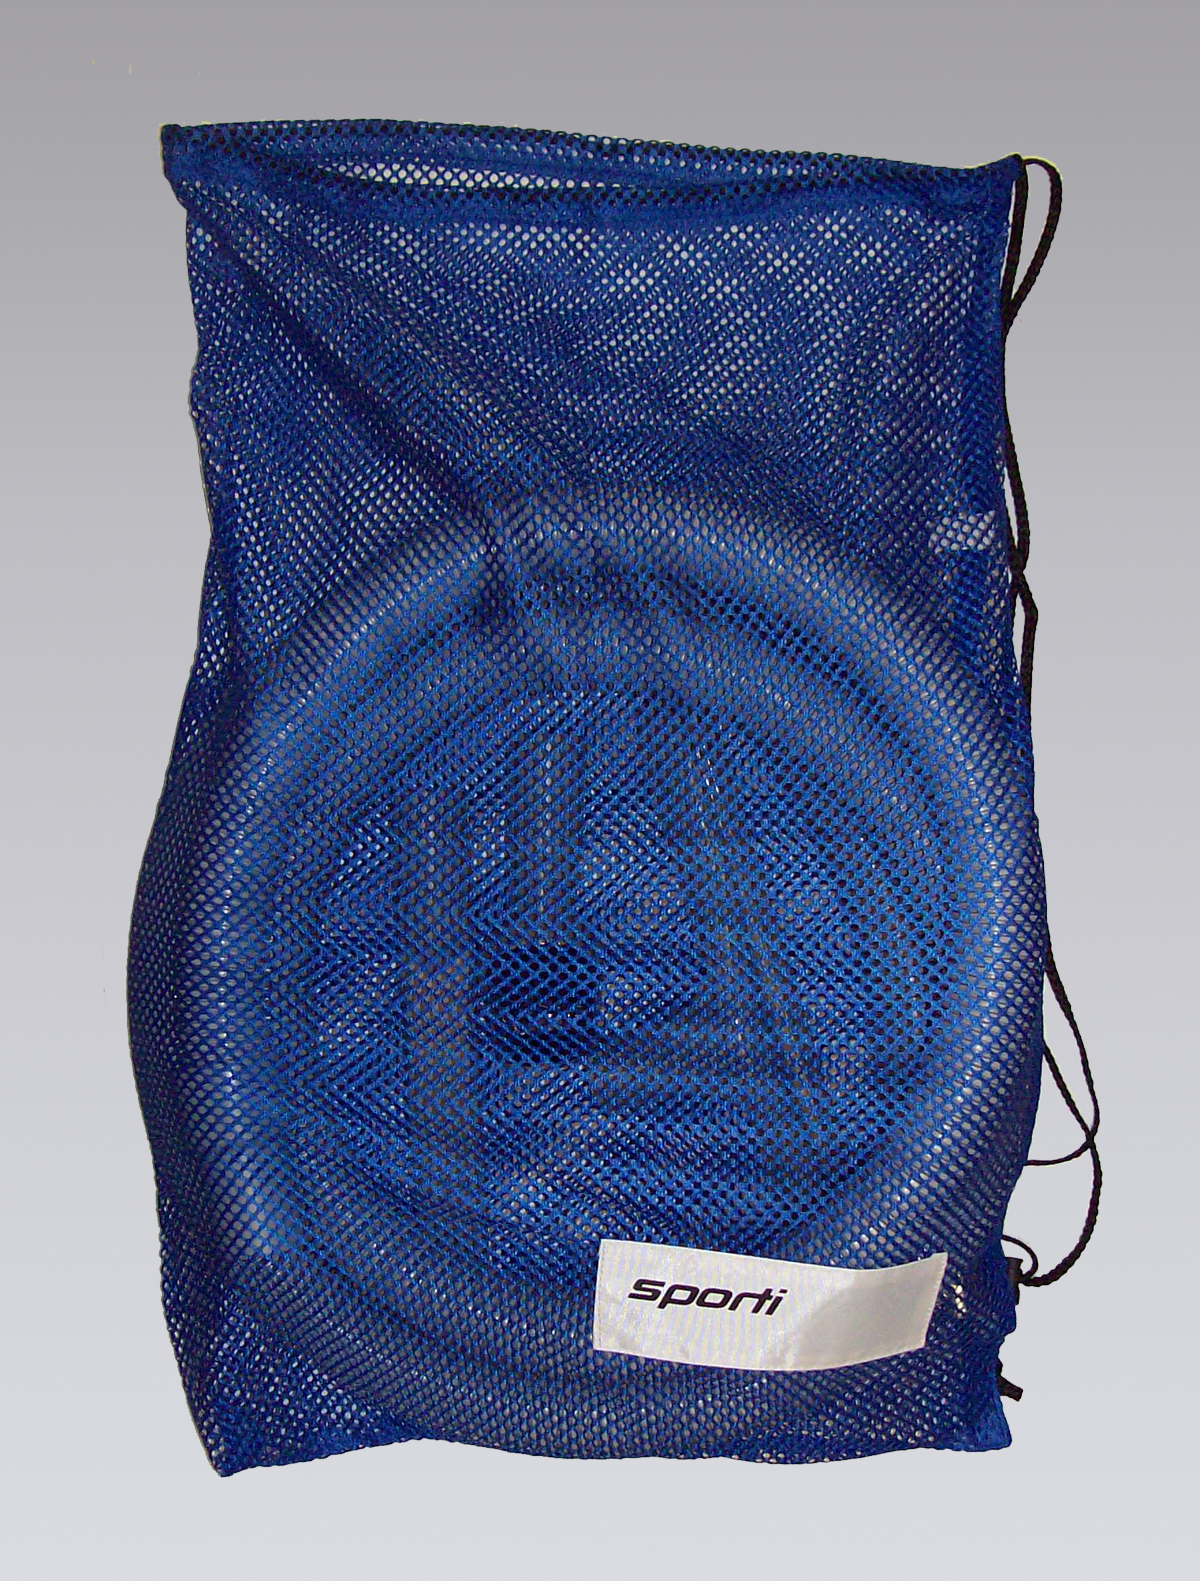 Nikro 862101 - Tool and Hose Carrying Bag